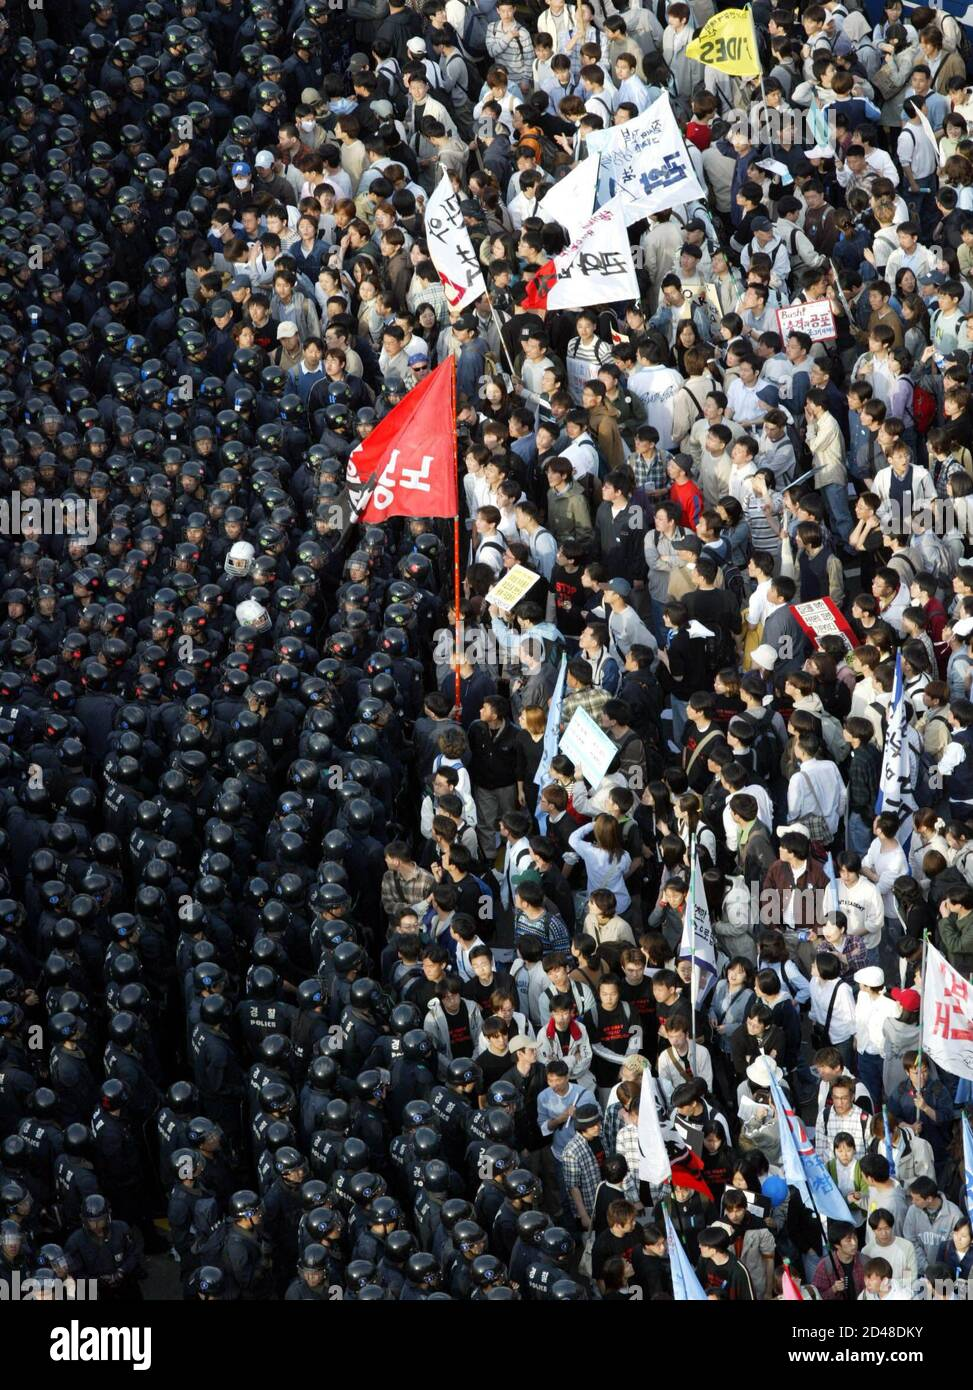 Riot police block protesters trying to march to National Assembly in Seoul April 2, 2003. South Korea's National Assembly voted on Wednesday to send about 700 medical and engineering personnel to Iraq after President Roh Moo-hyun told lawmakers that cementing close ties with Washington was key to securing peace on the divided Korean peninsula. REUTERS/Kim Kyung-Hoon  LJW/DL Stock Photo